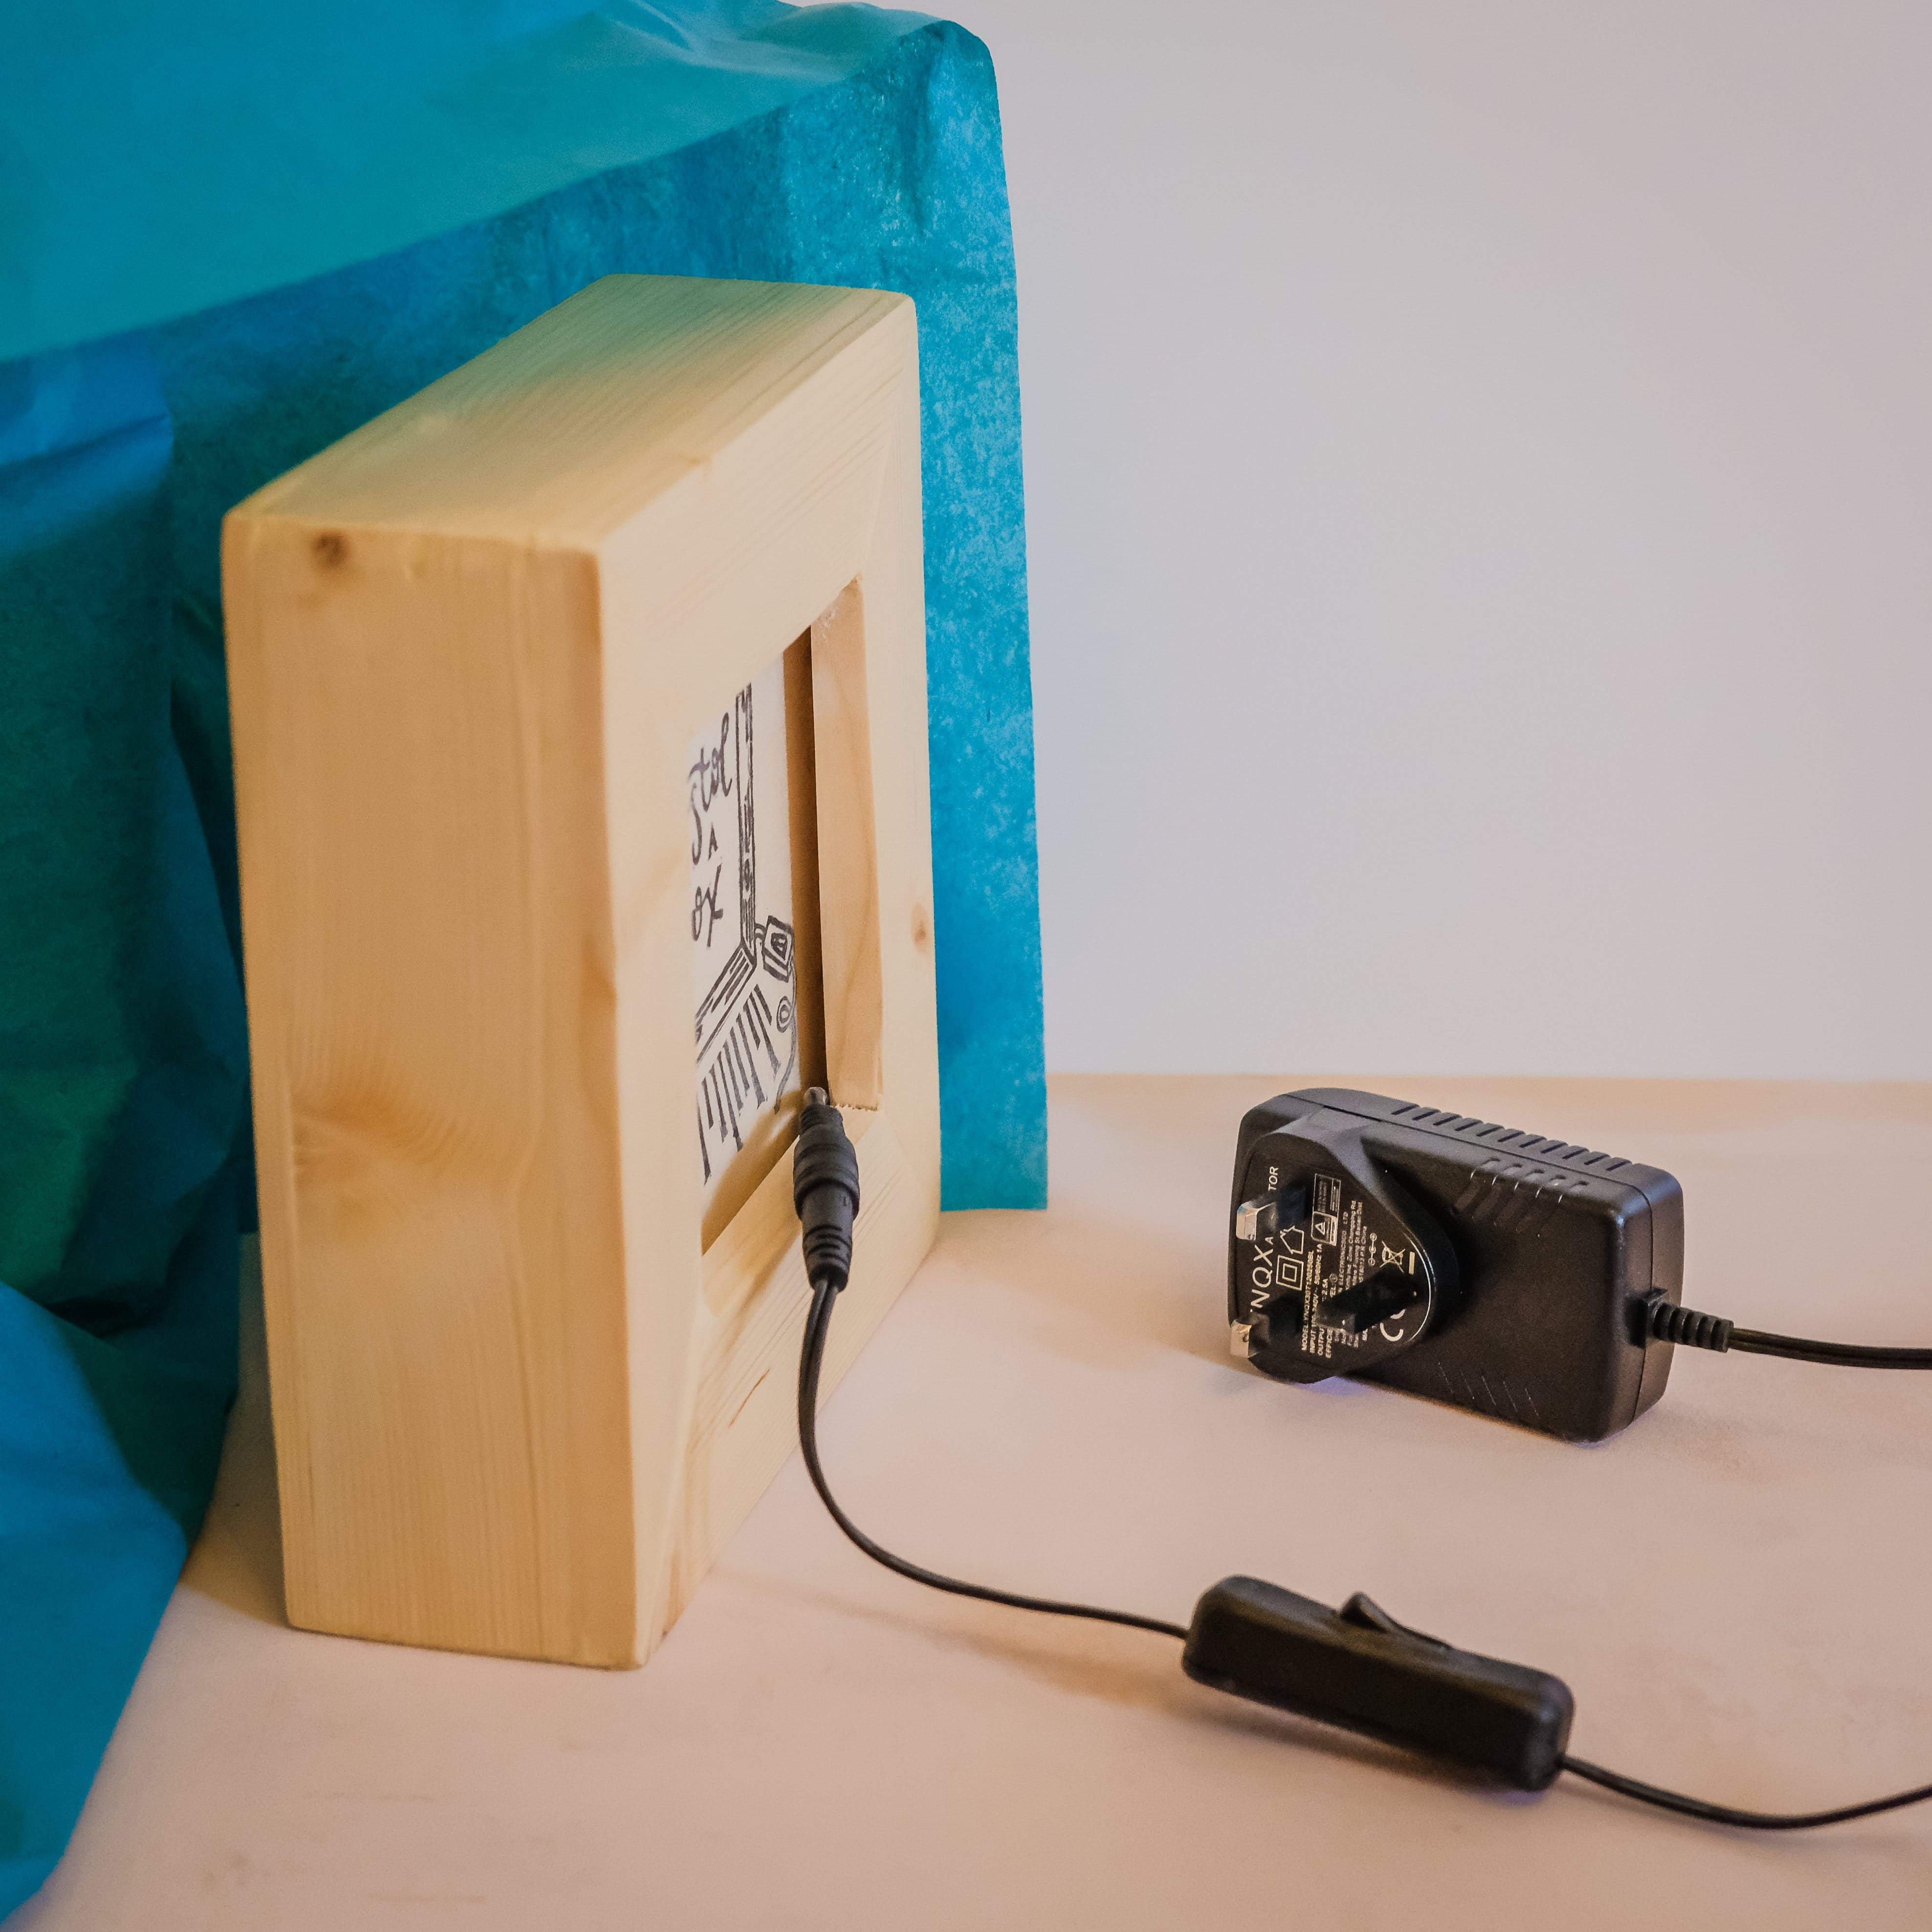 LED powered light box with a power adapter